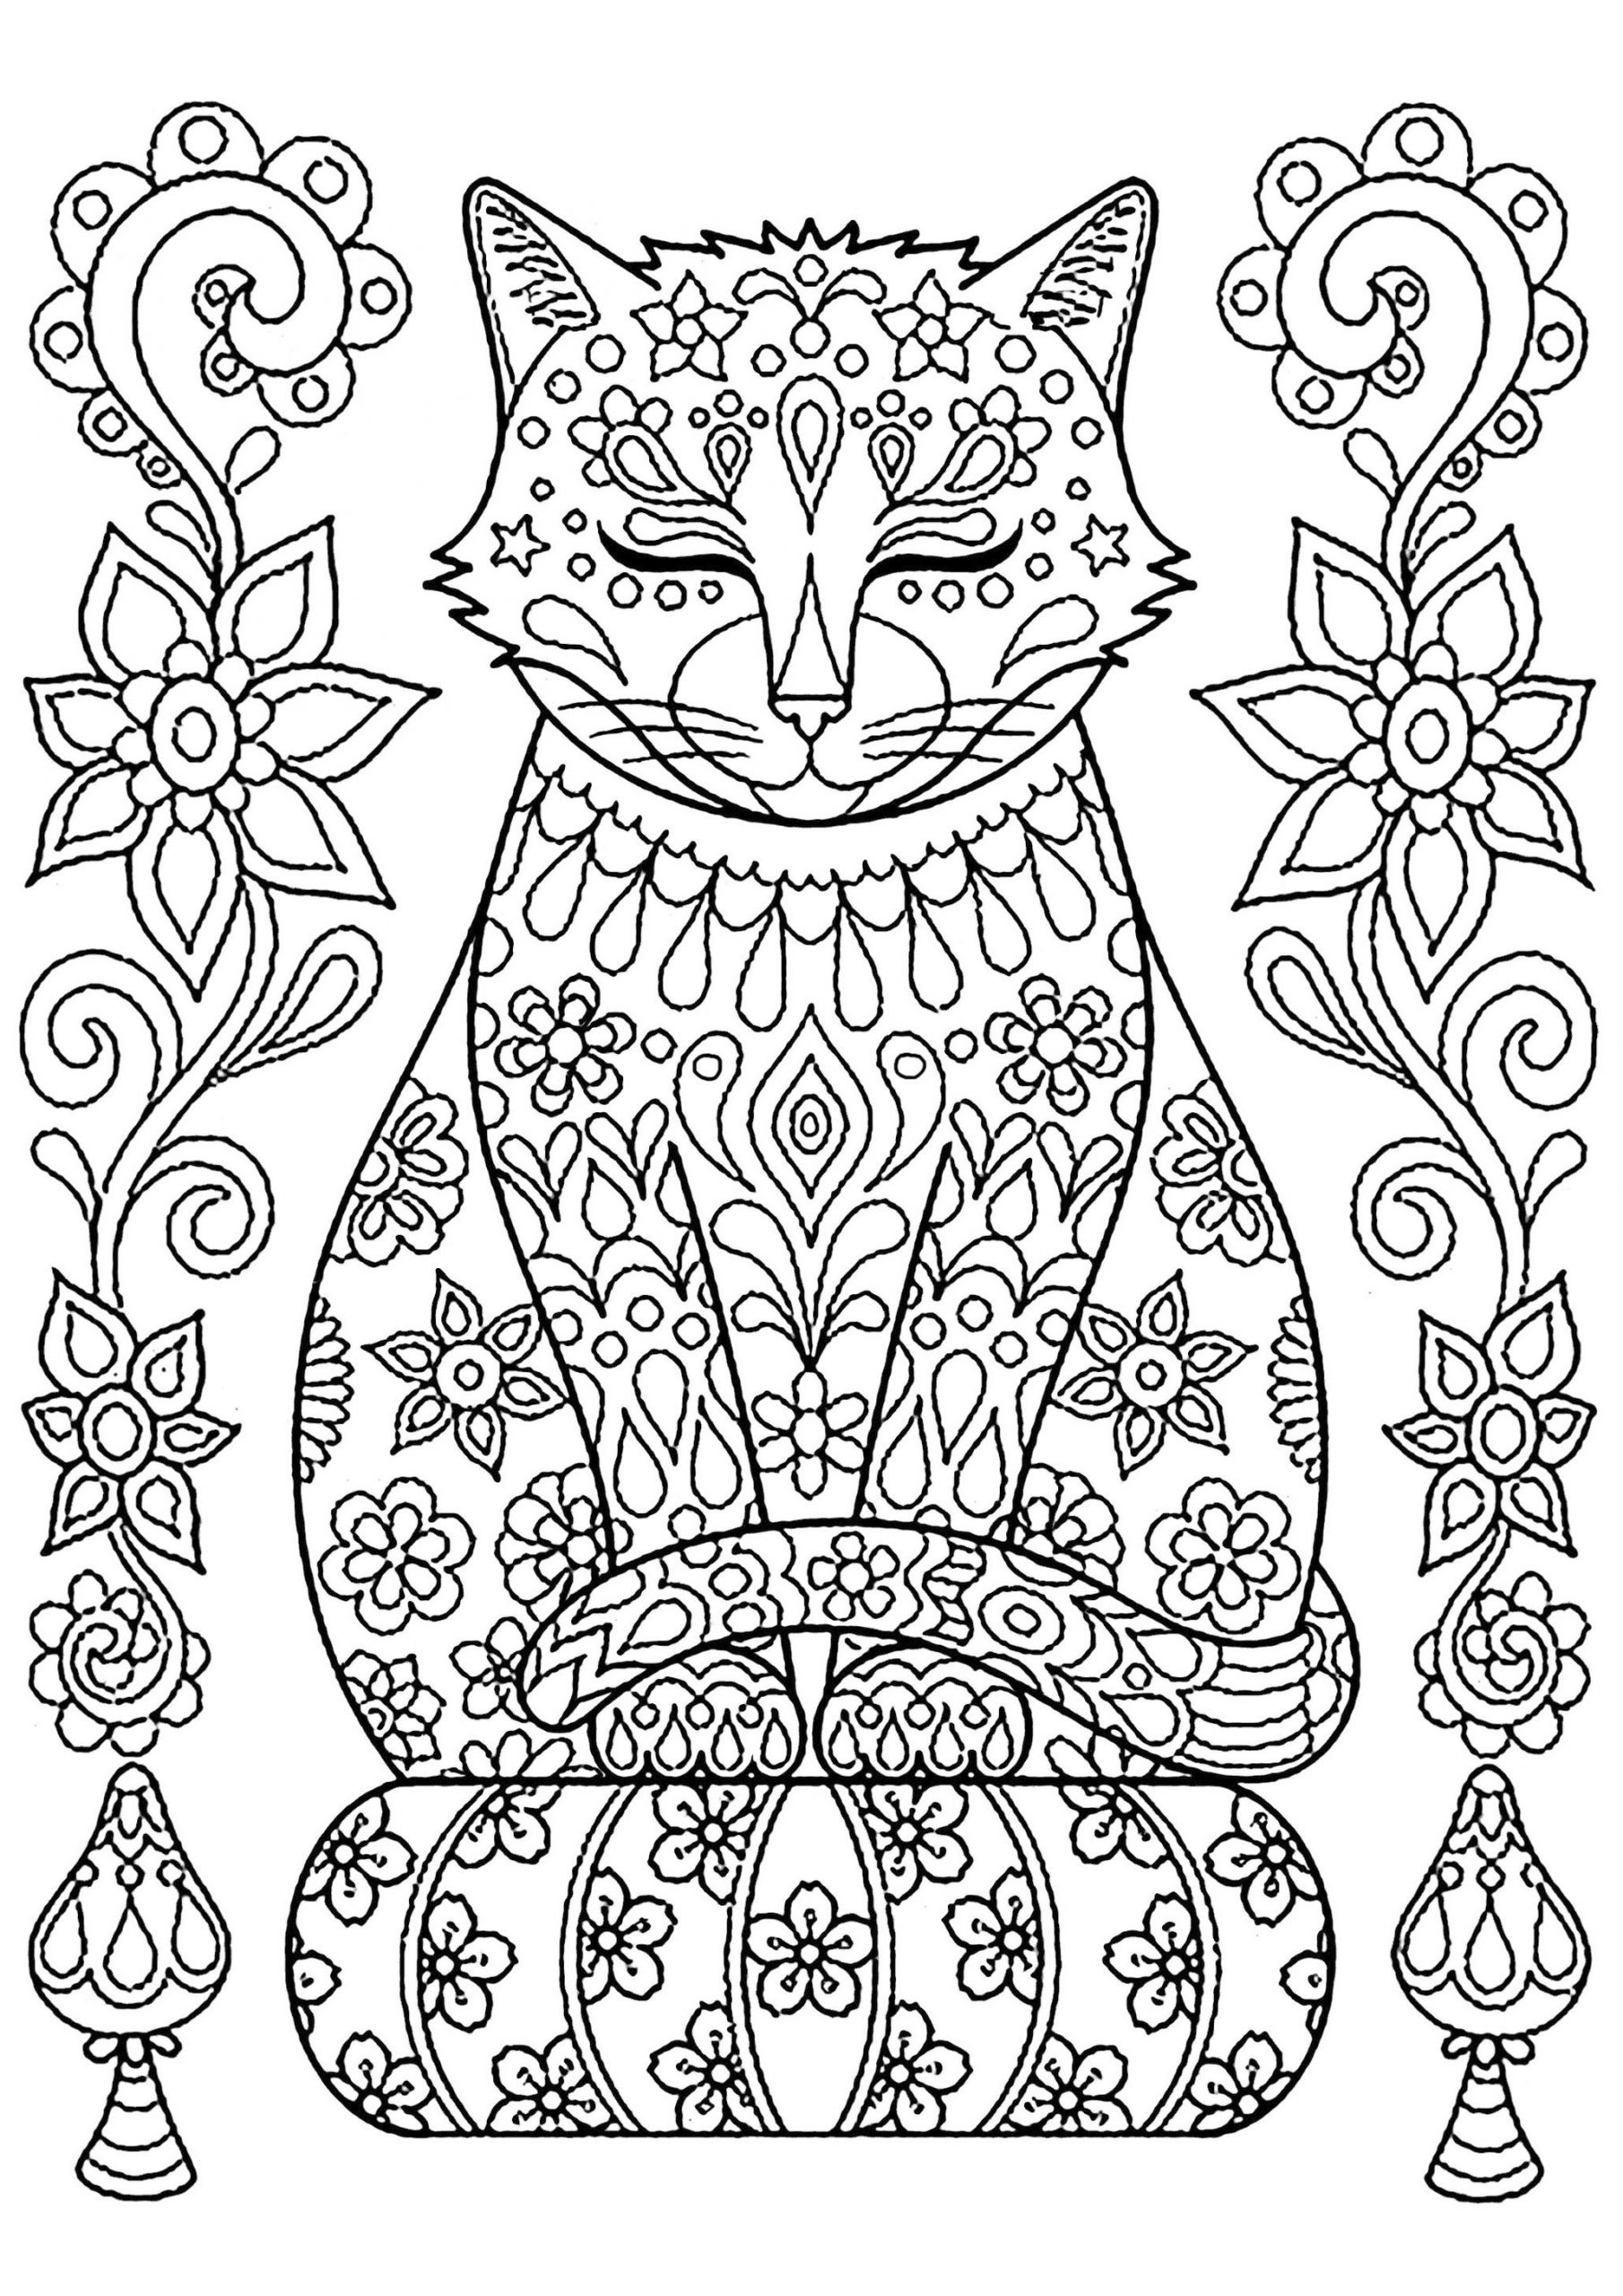 53 Staggering Detailed Animal Coloring Pages – azspring | 2560x1810